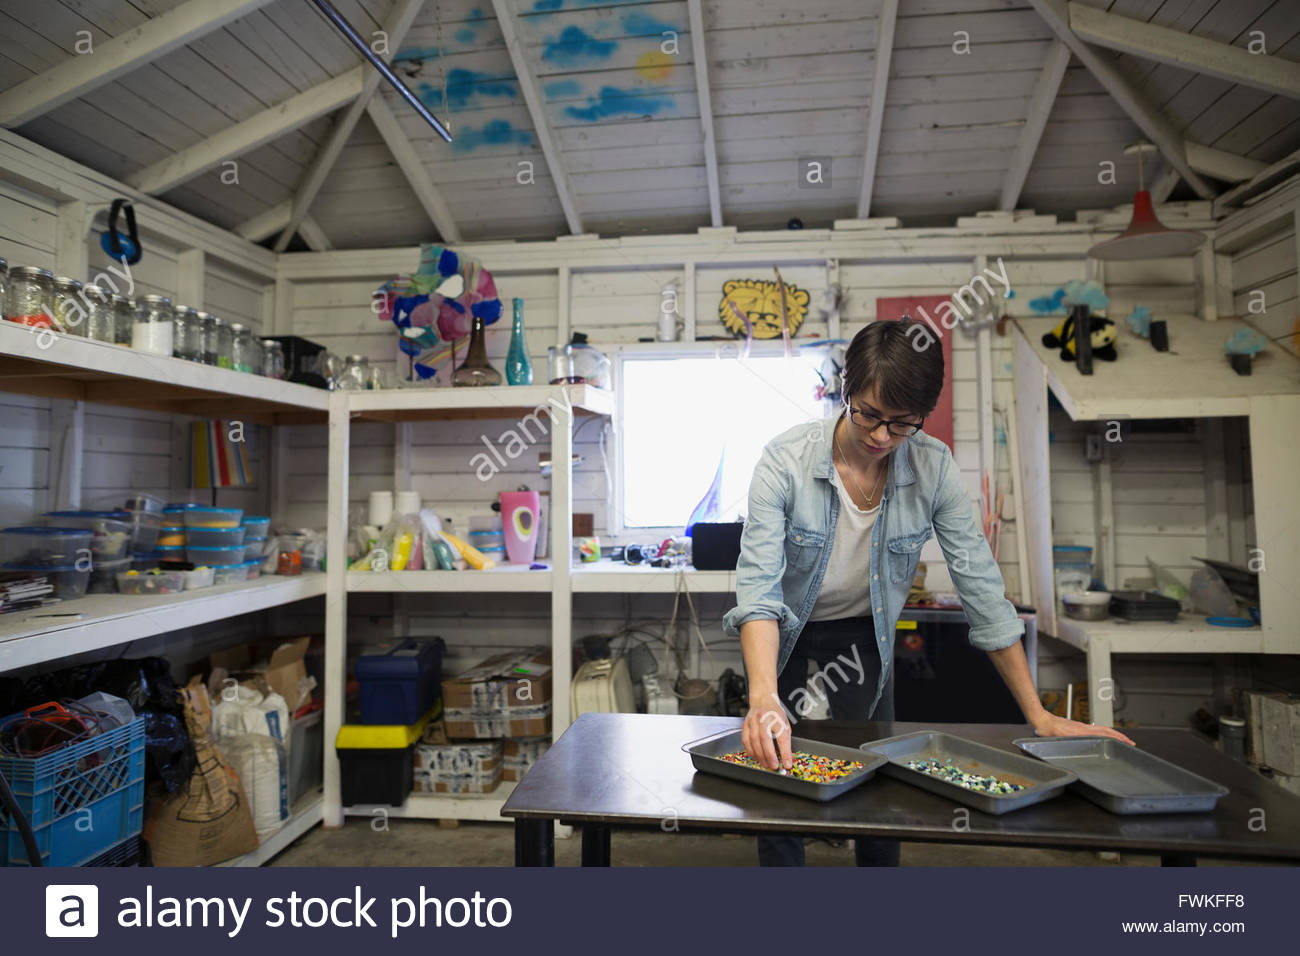 Glassblower examining loose glass pieces in workshop - Stock Image